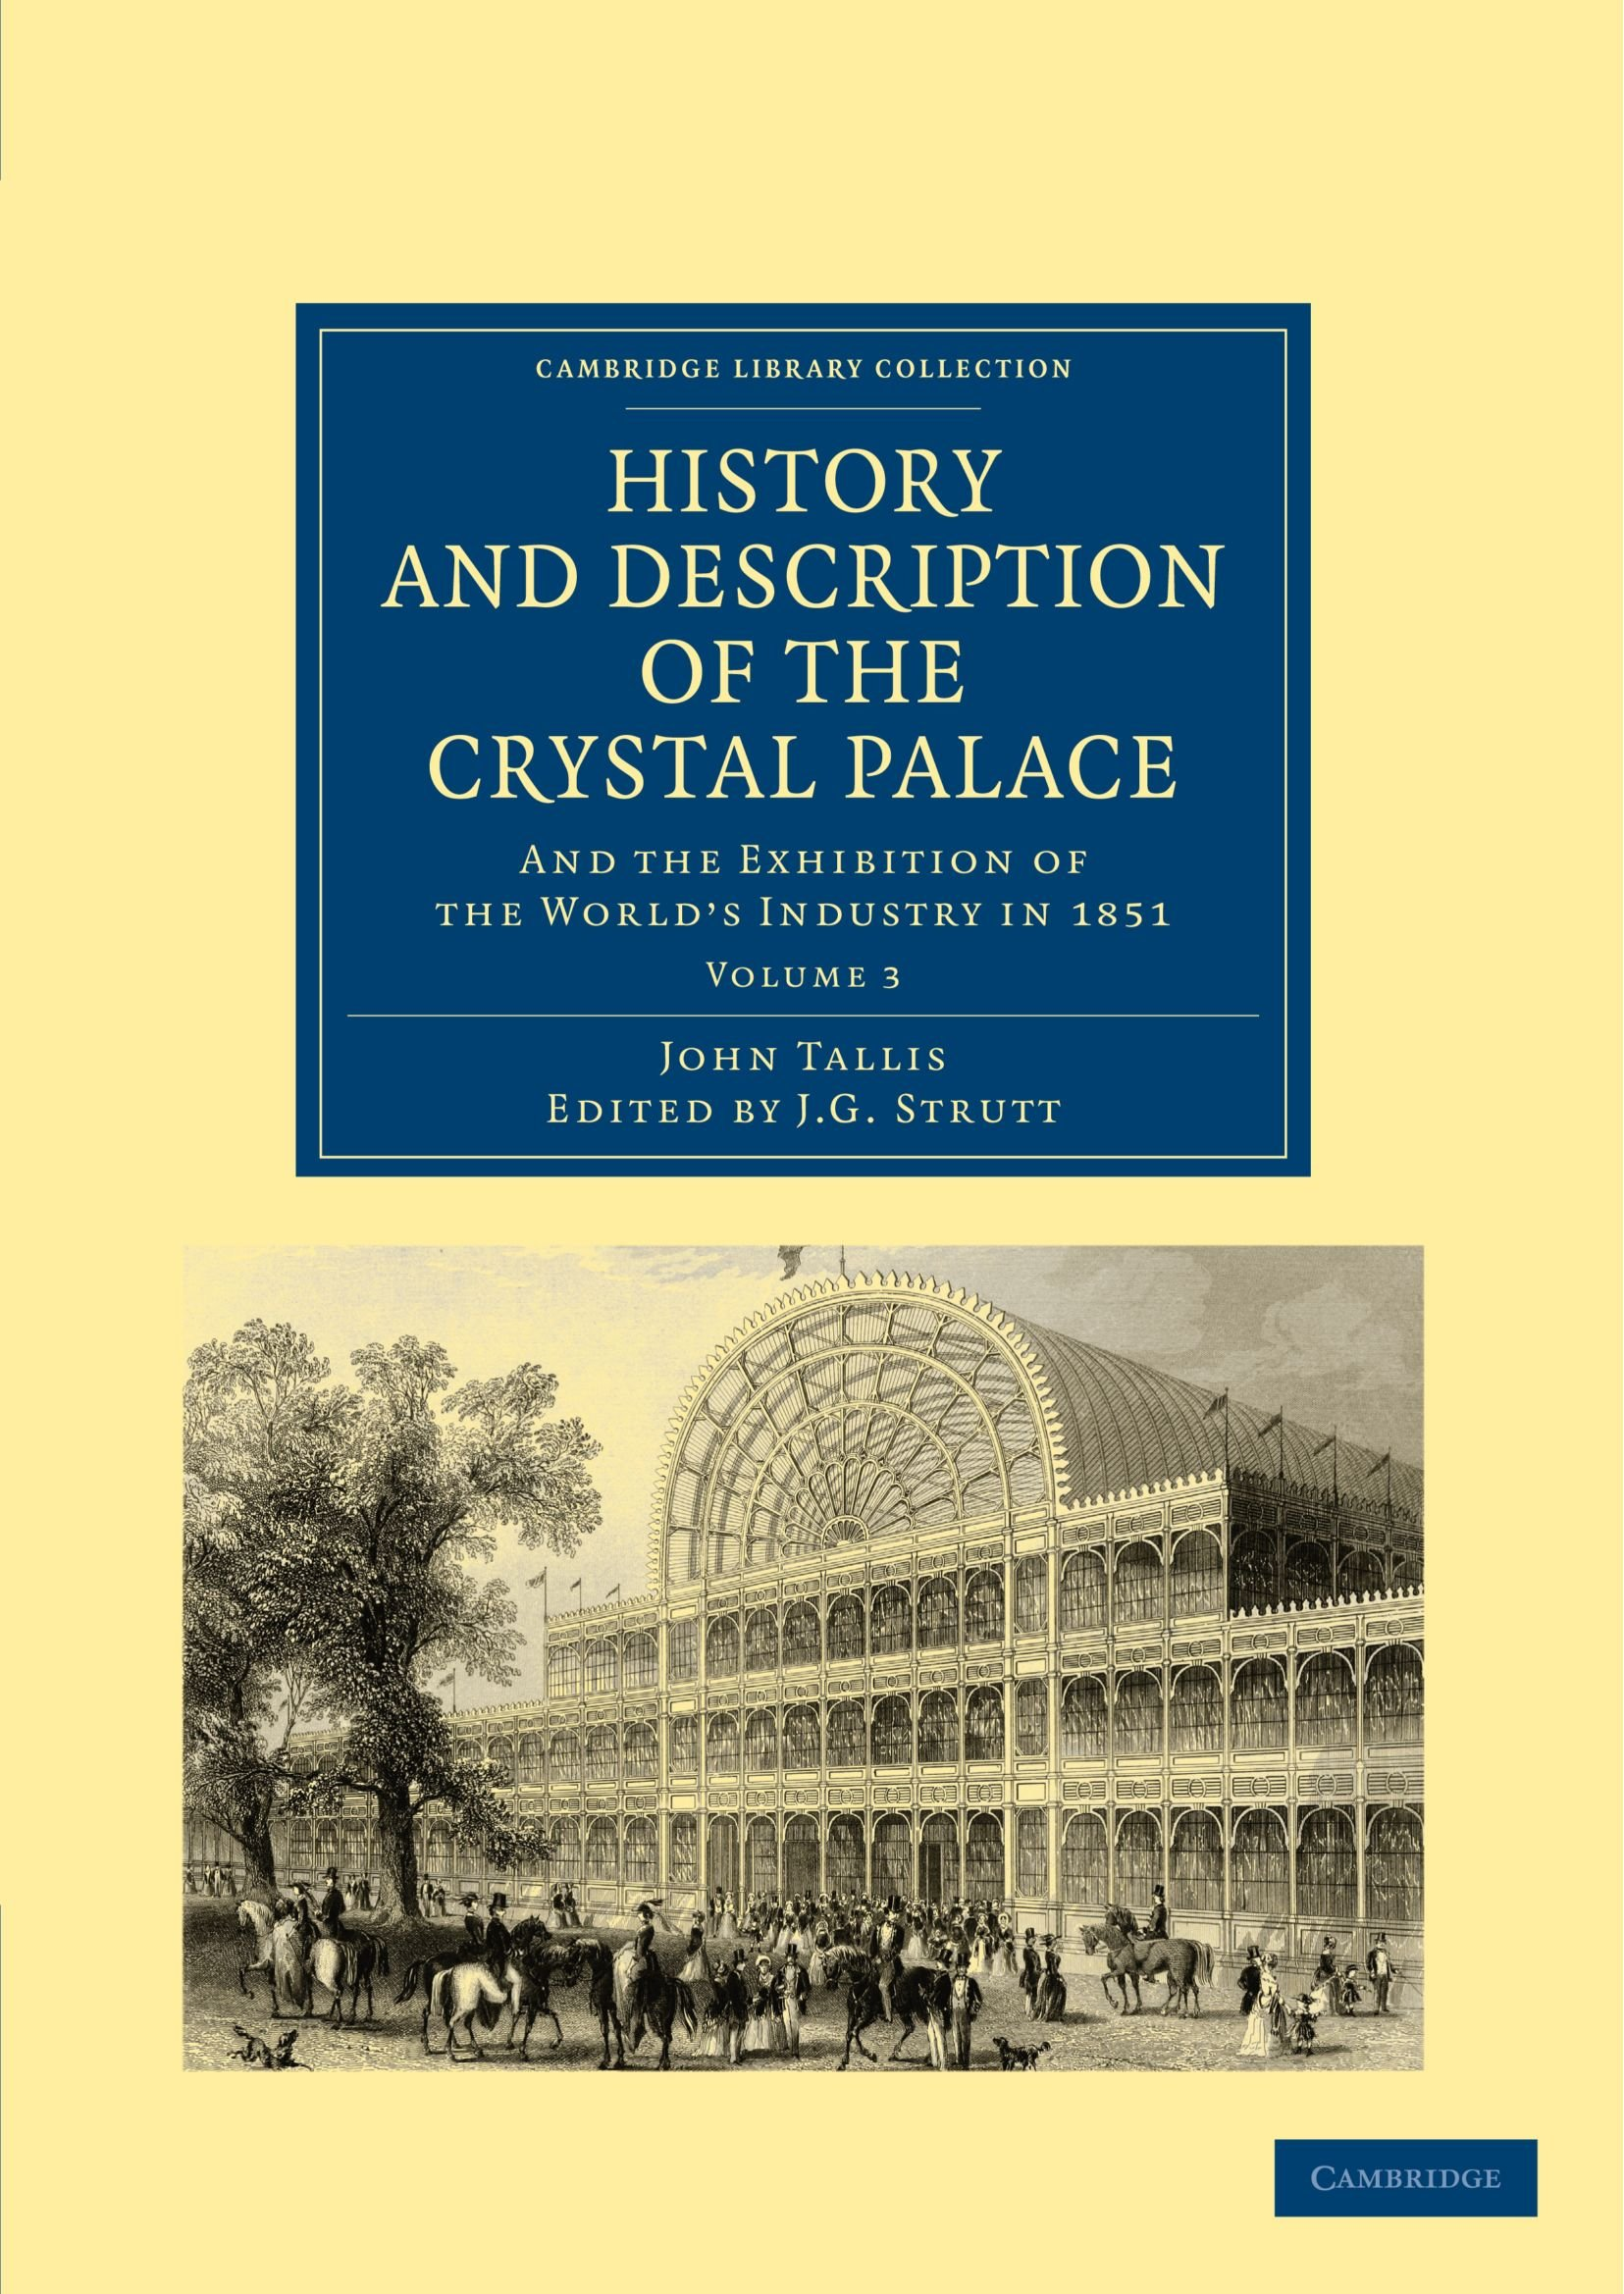 Download History and Description of the Crystal Palace: and the Exhibition of the World's Industry in 1851 (Cambridge Library Collection - British and Irish History, 19th Century) (Volume 3) ebook